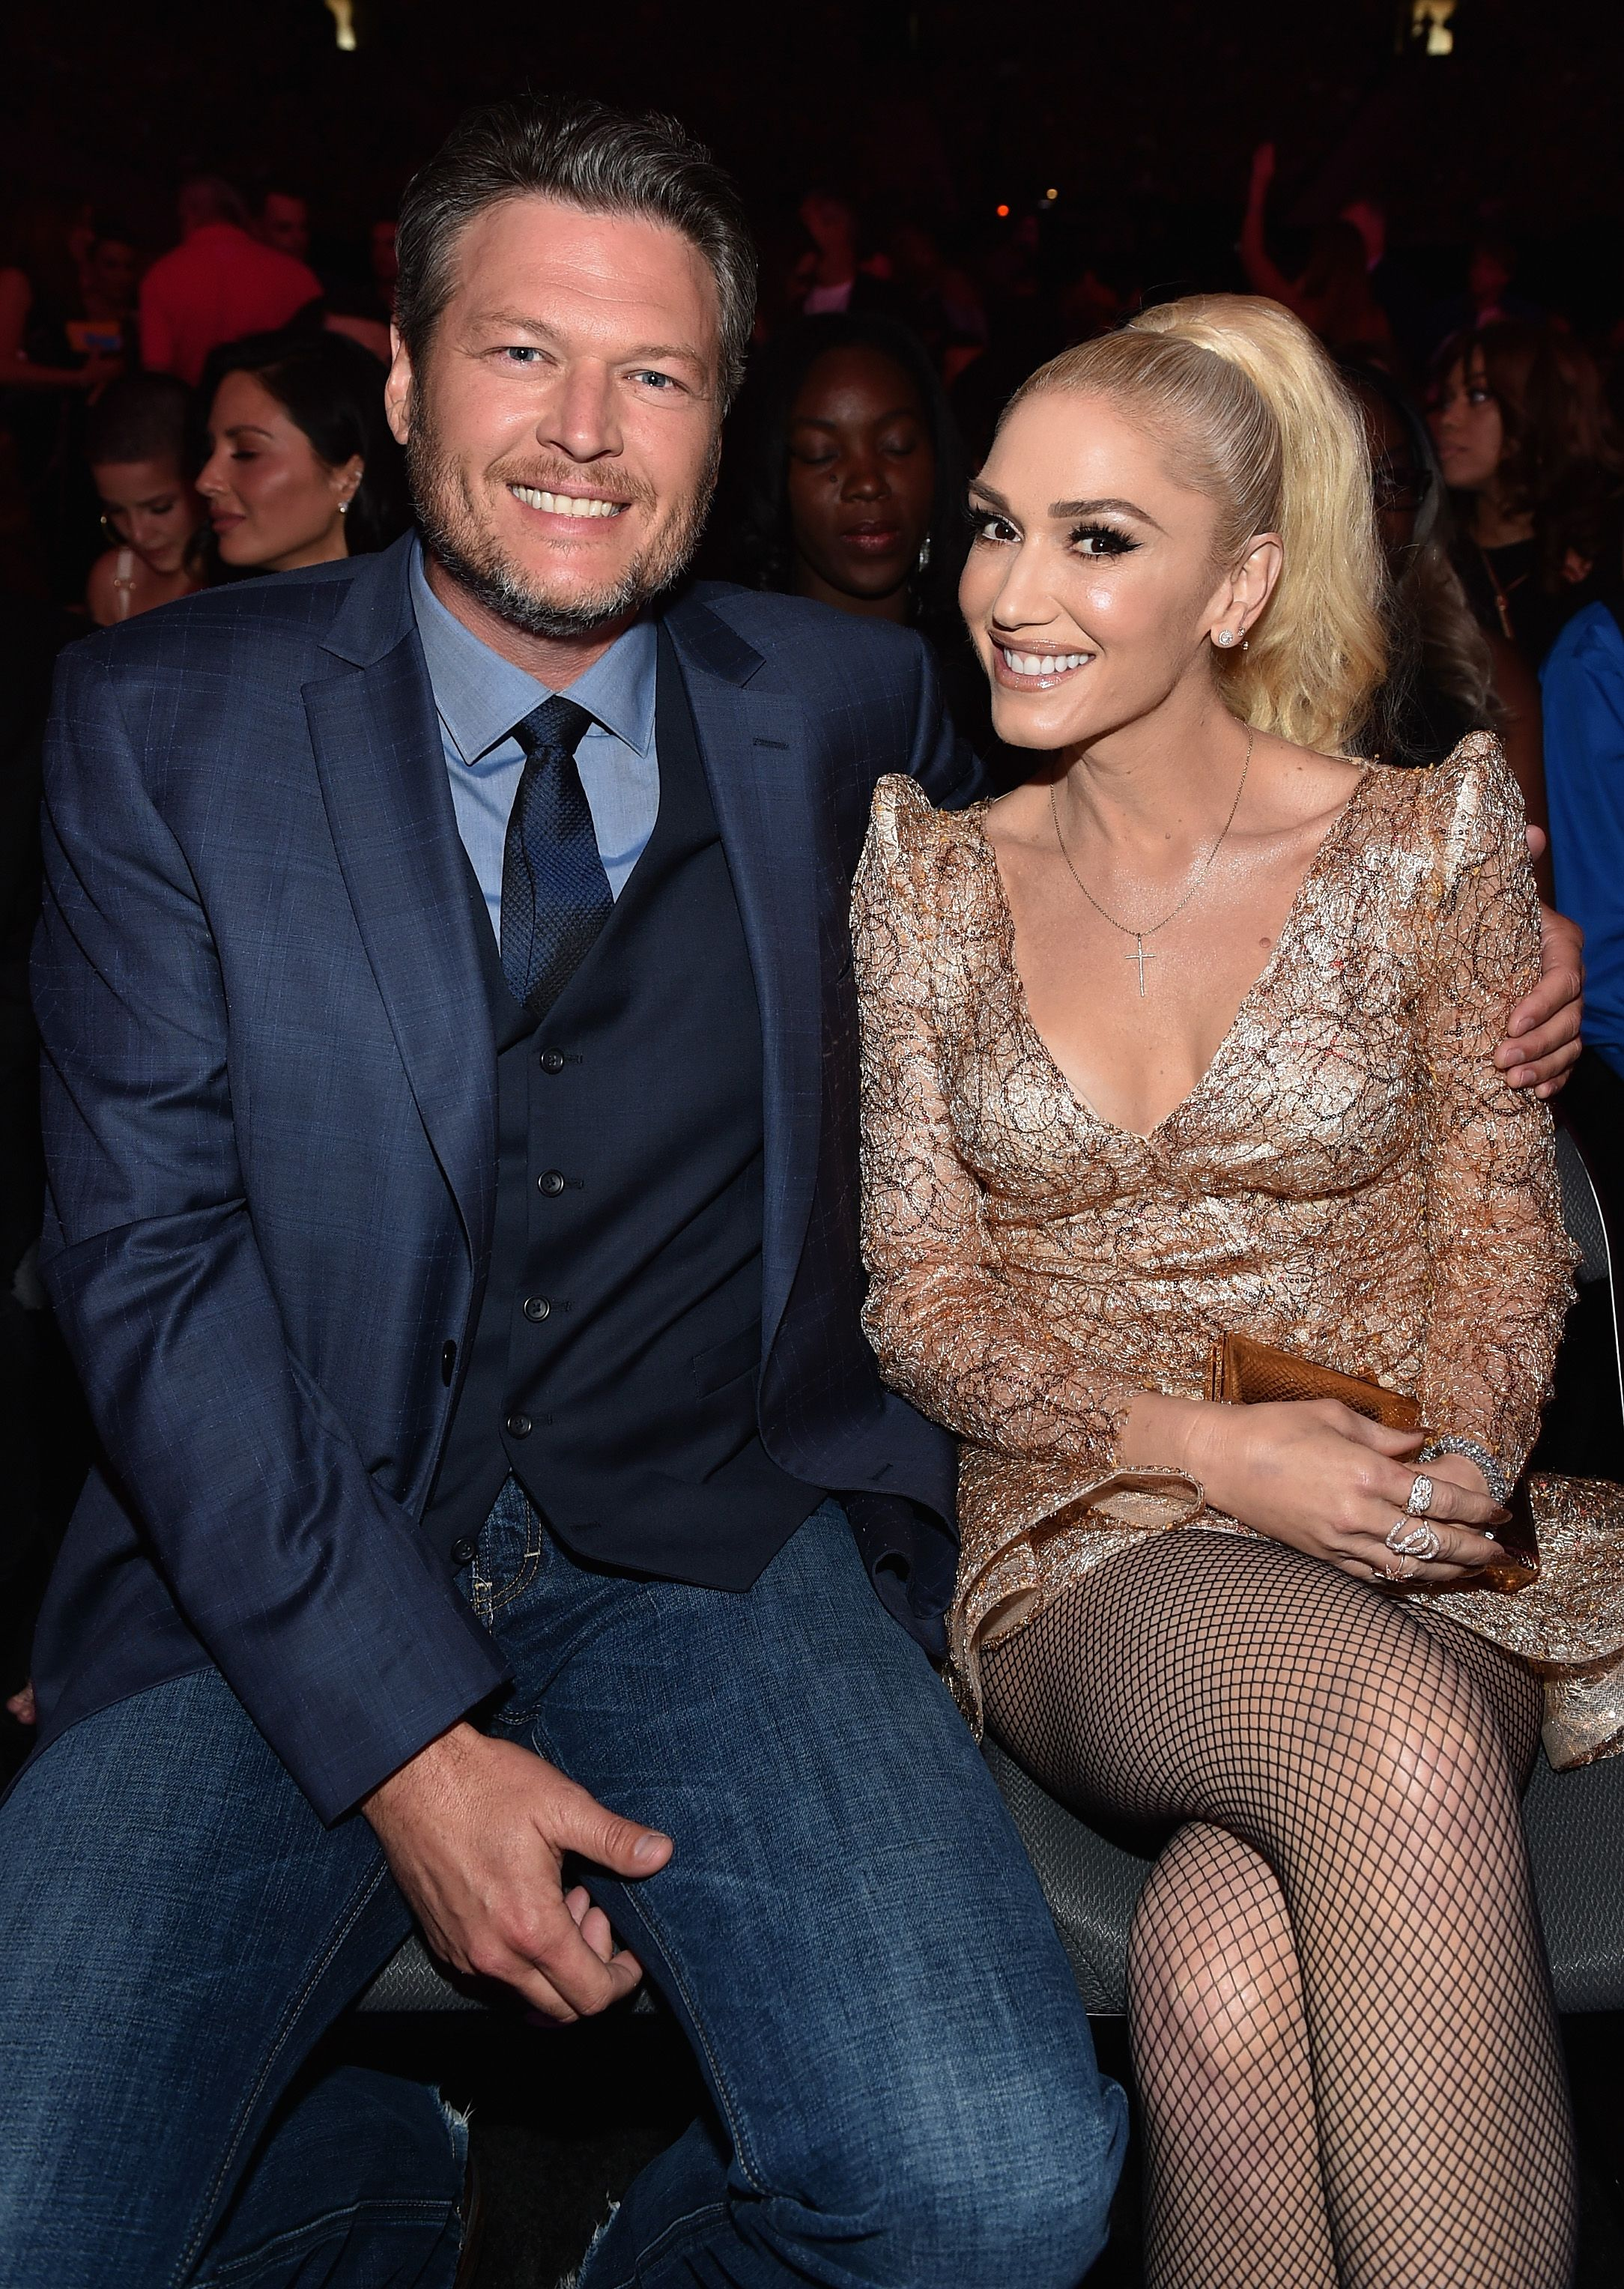 Blake Shelton and Gwen Stefani at the 2017 Billboard Music Awards at T-Mobile Arena on May 21, 2017 | Photo: Getty Images